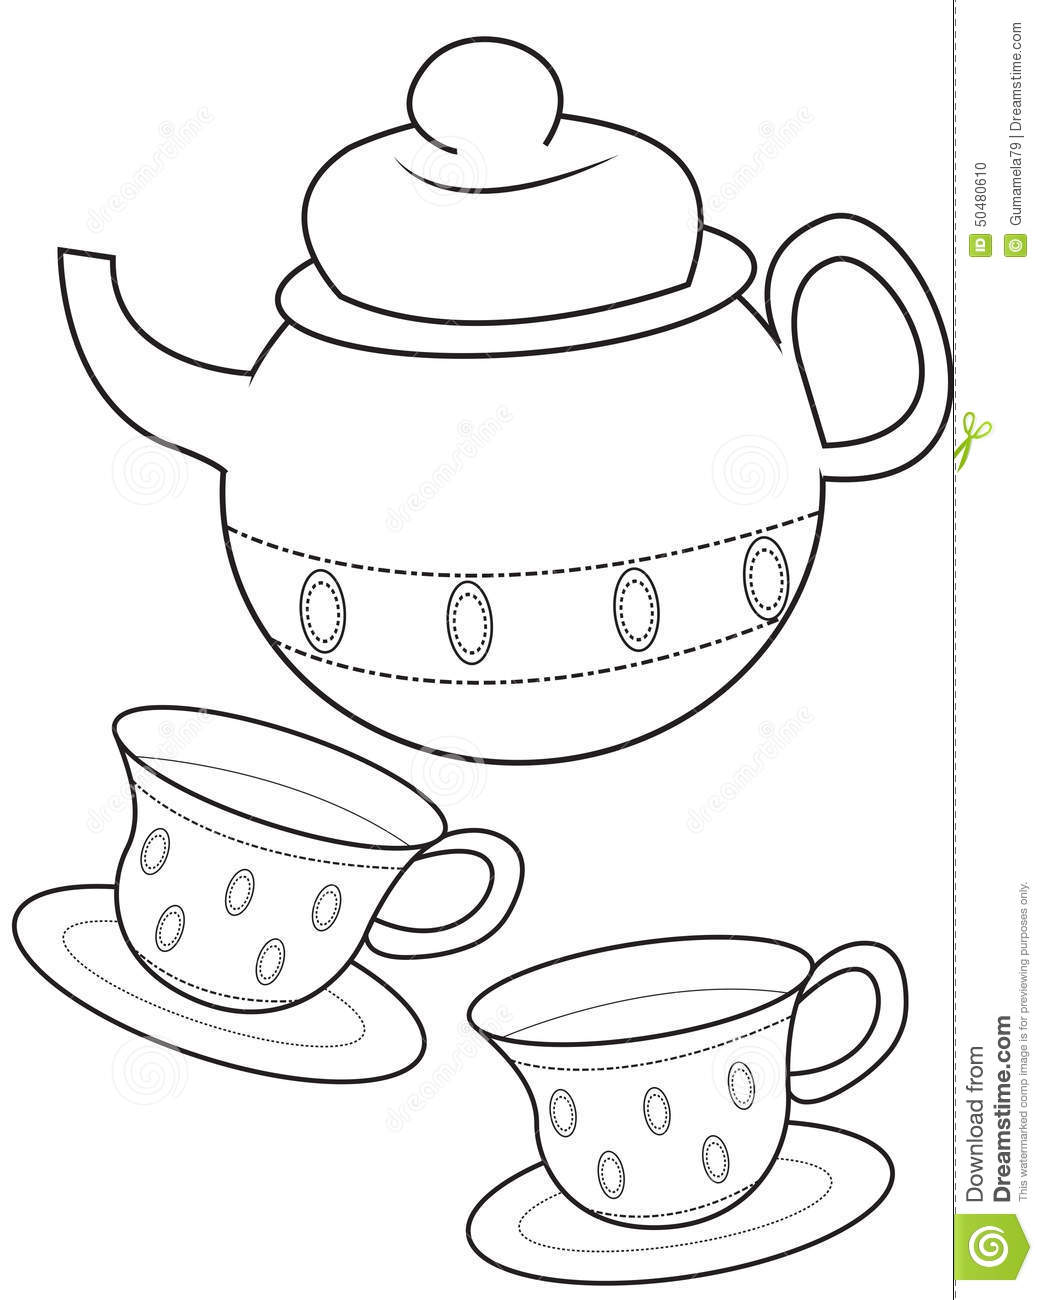 http://thumbs.dreamstime.com/z/teacup-coloring-page-useful